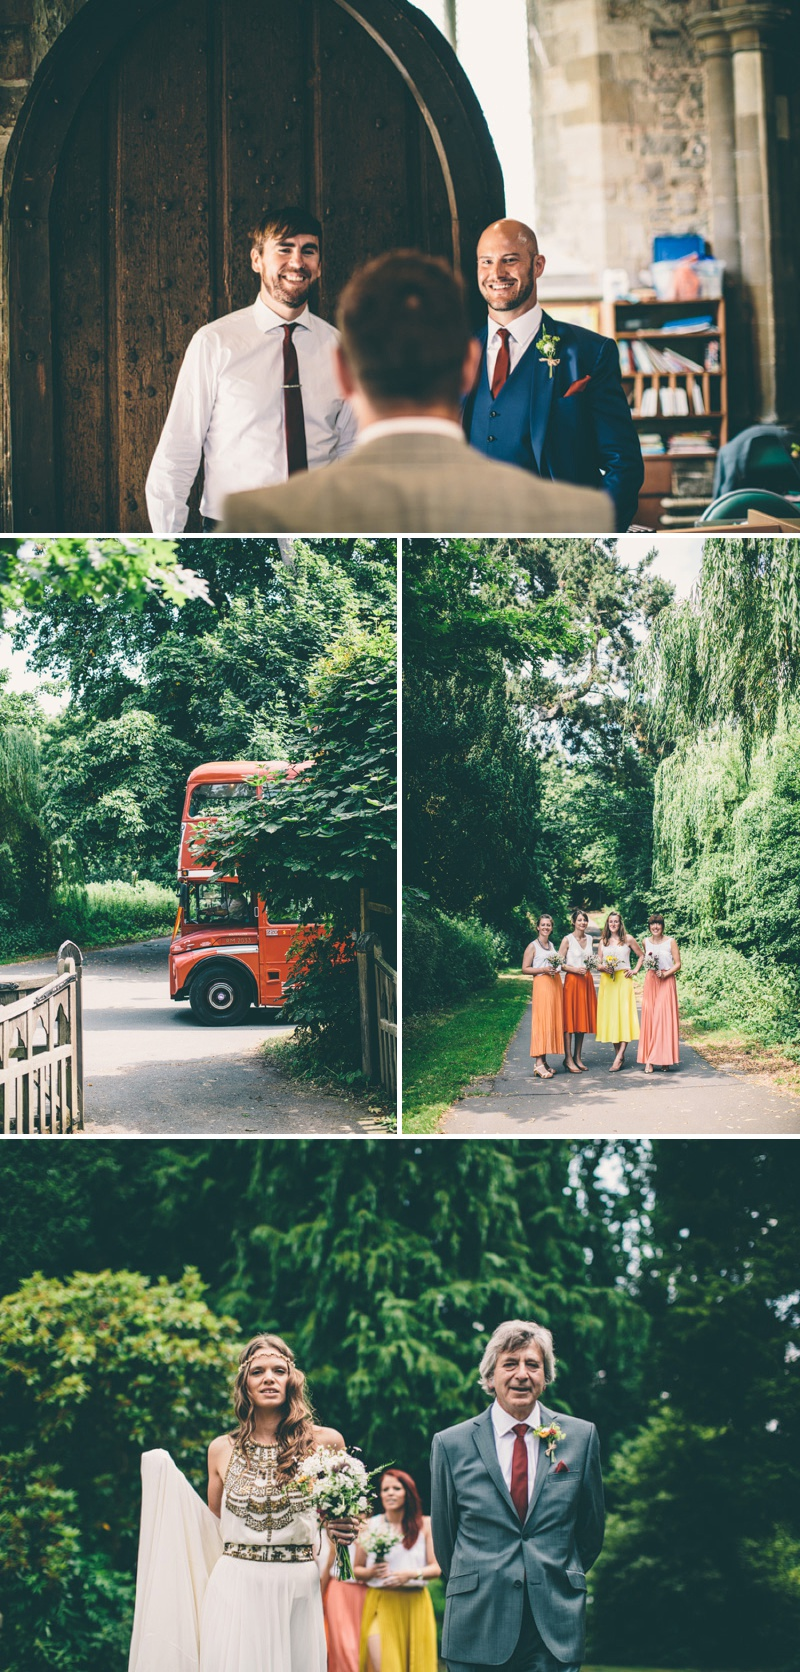 A Maid Marian Festival Inspired Wedding At Glebe Farm With An Amanda Wakeley Cleopatra Dress, Mismatched Bridesmaids And A Vintage Rosie Weisencrantz Headpiece._0006